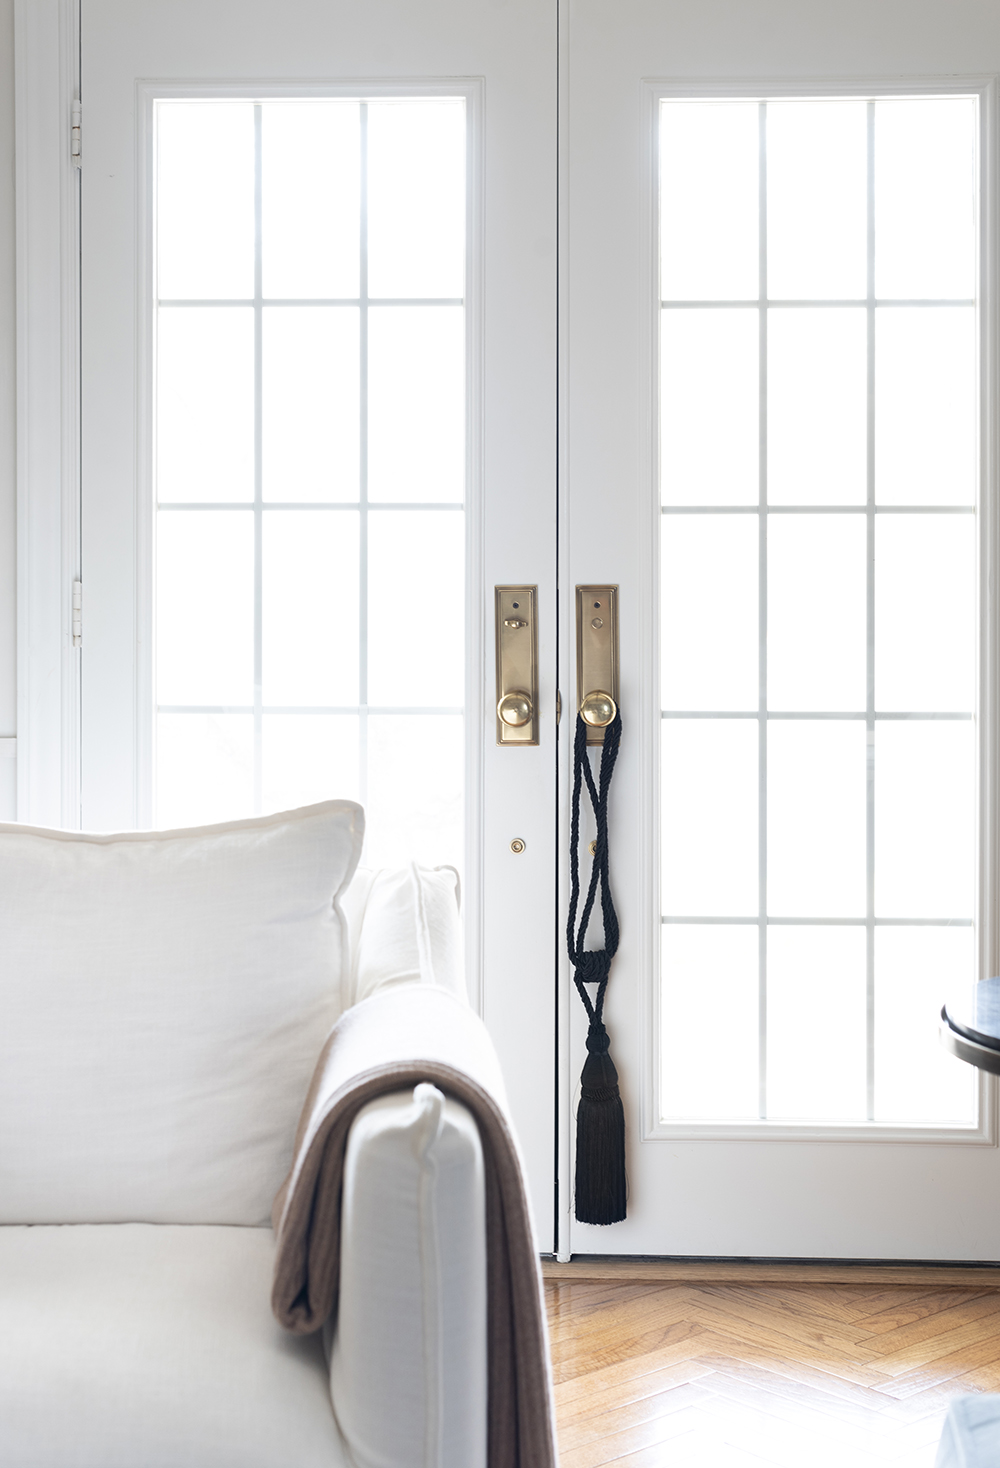 30+ Ideas for Interior Styling with Tassels - roomfortuesday.com